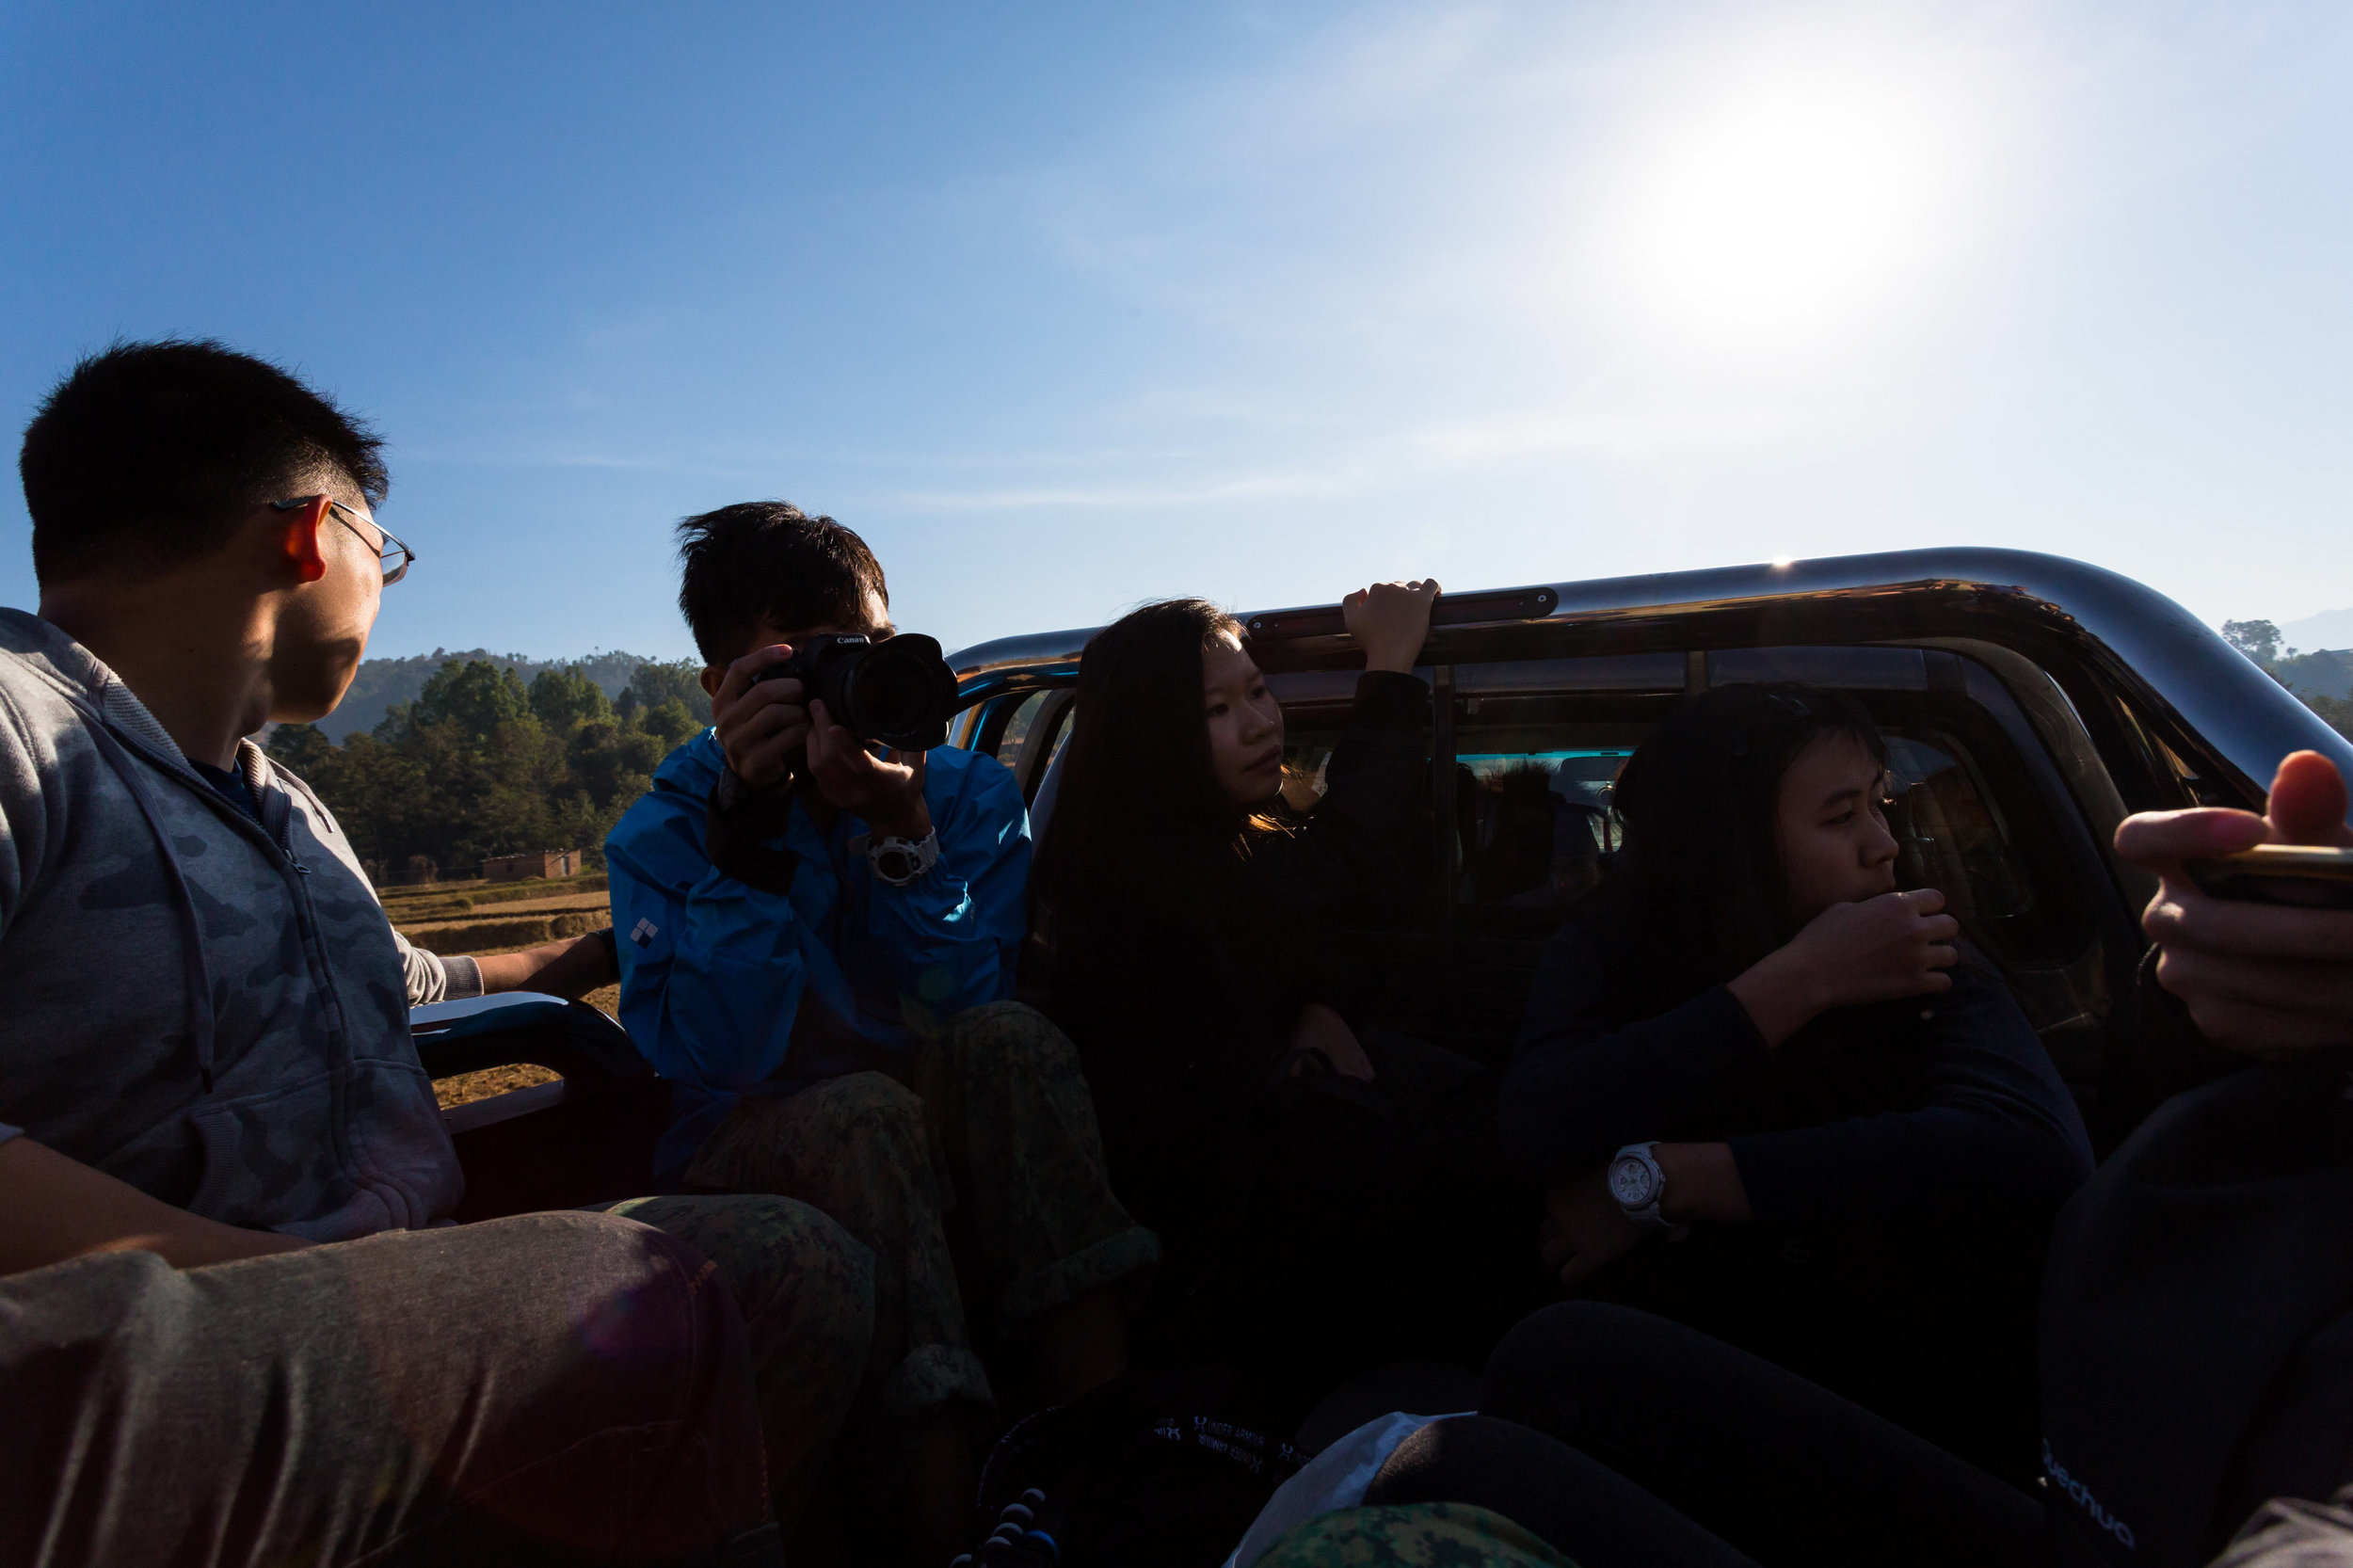 This is probably the only photo where all of us sat down for the ride